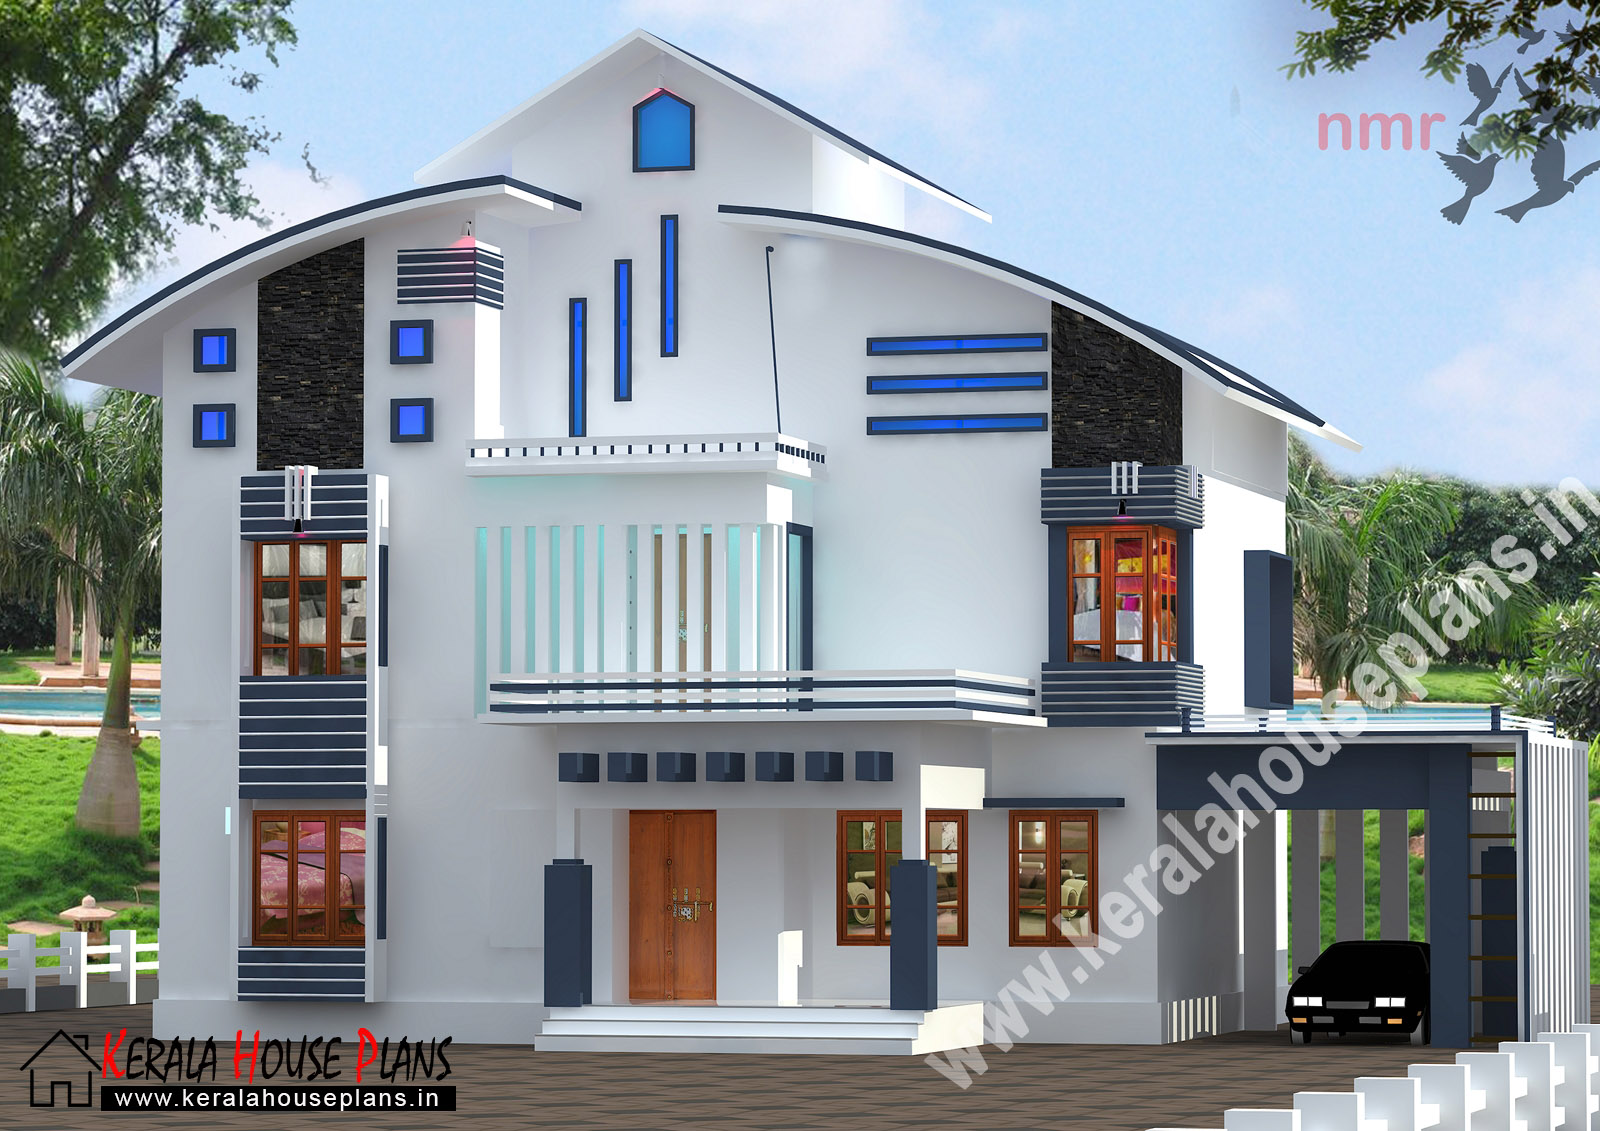 Kerala House Plans and Designs